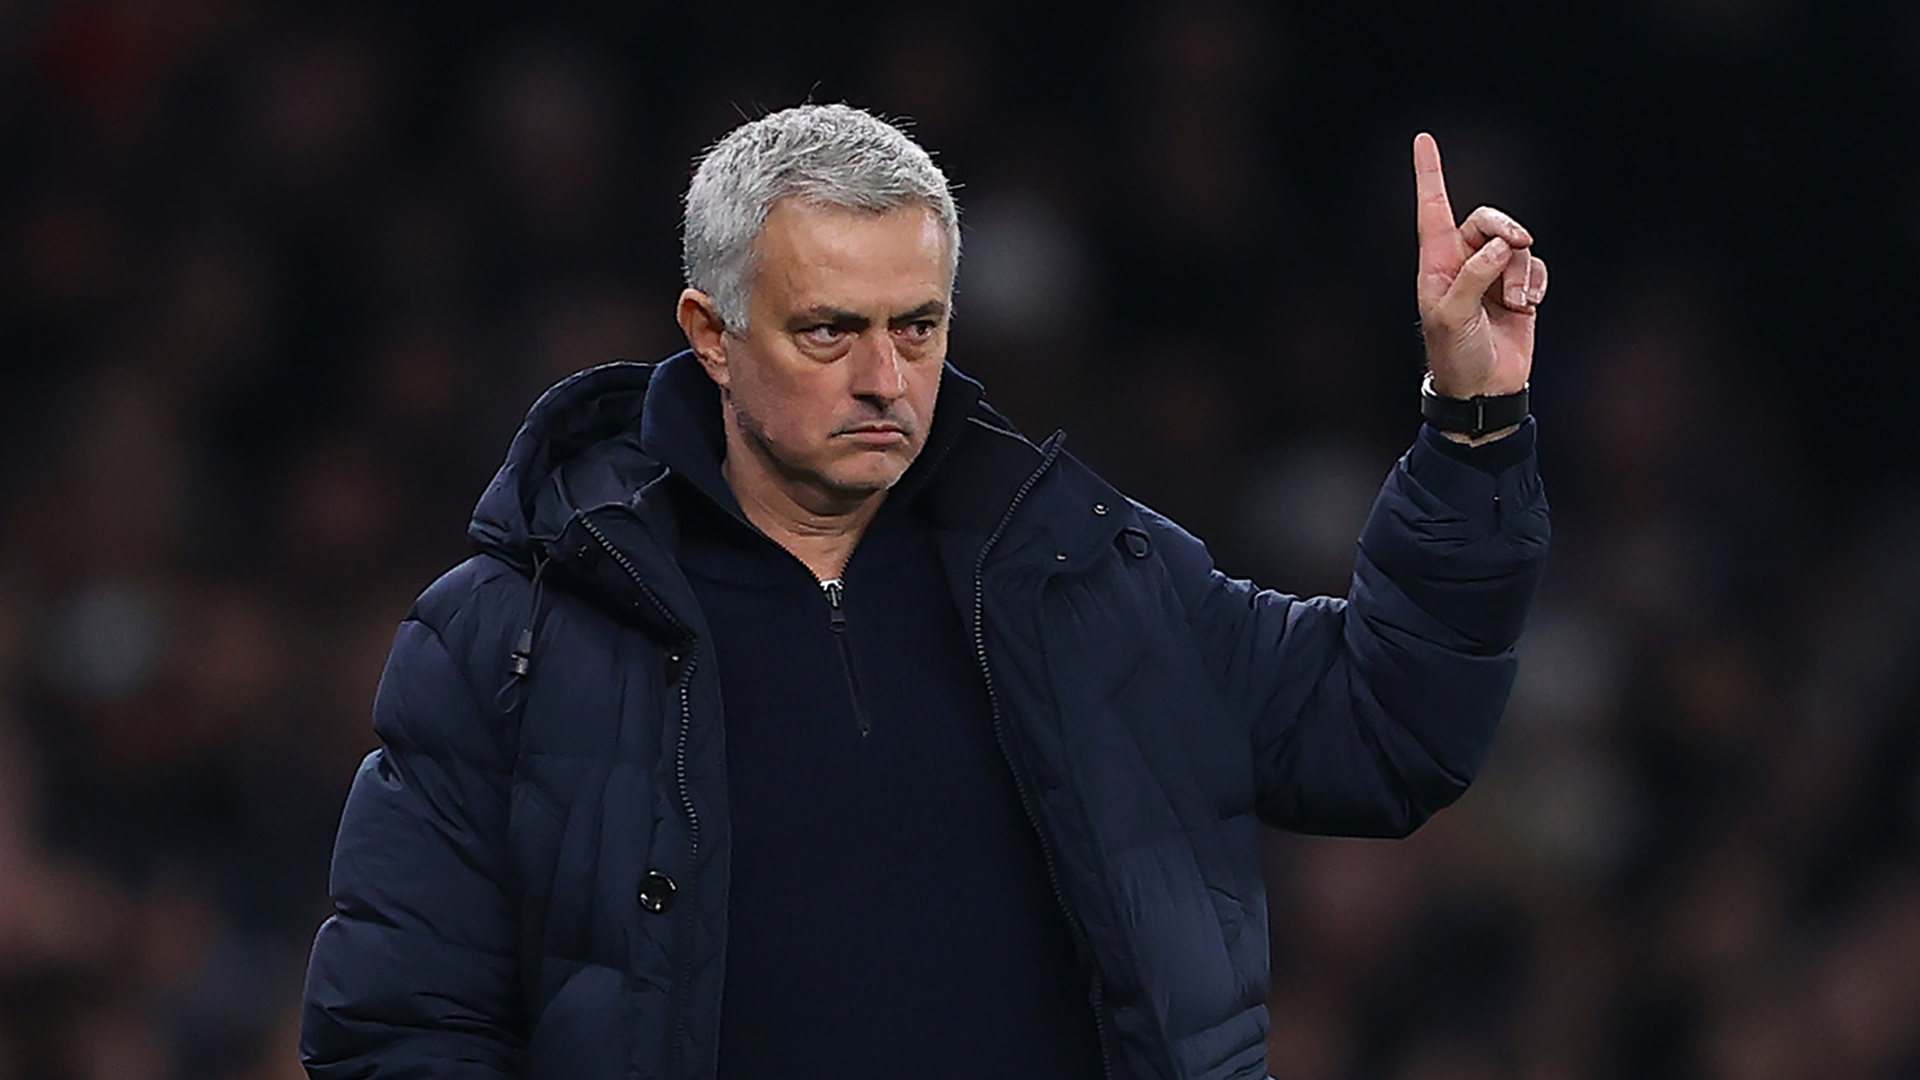 Mourinho Is An Absolutely Top Manager Manchester United Coach Mckenna Talks Up Ousted Former Boss